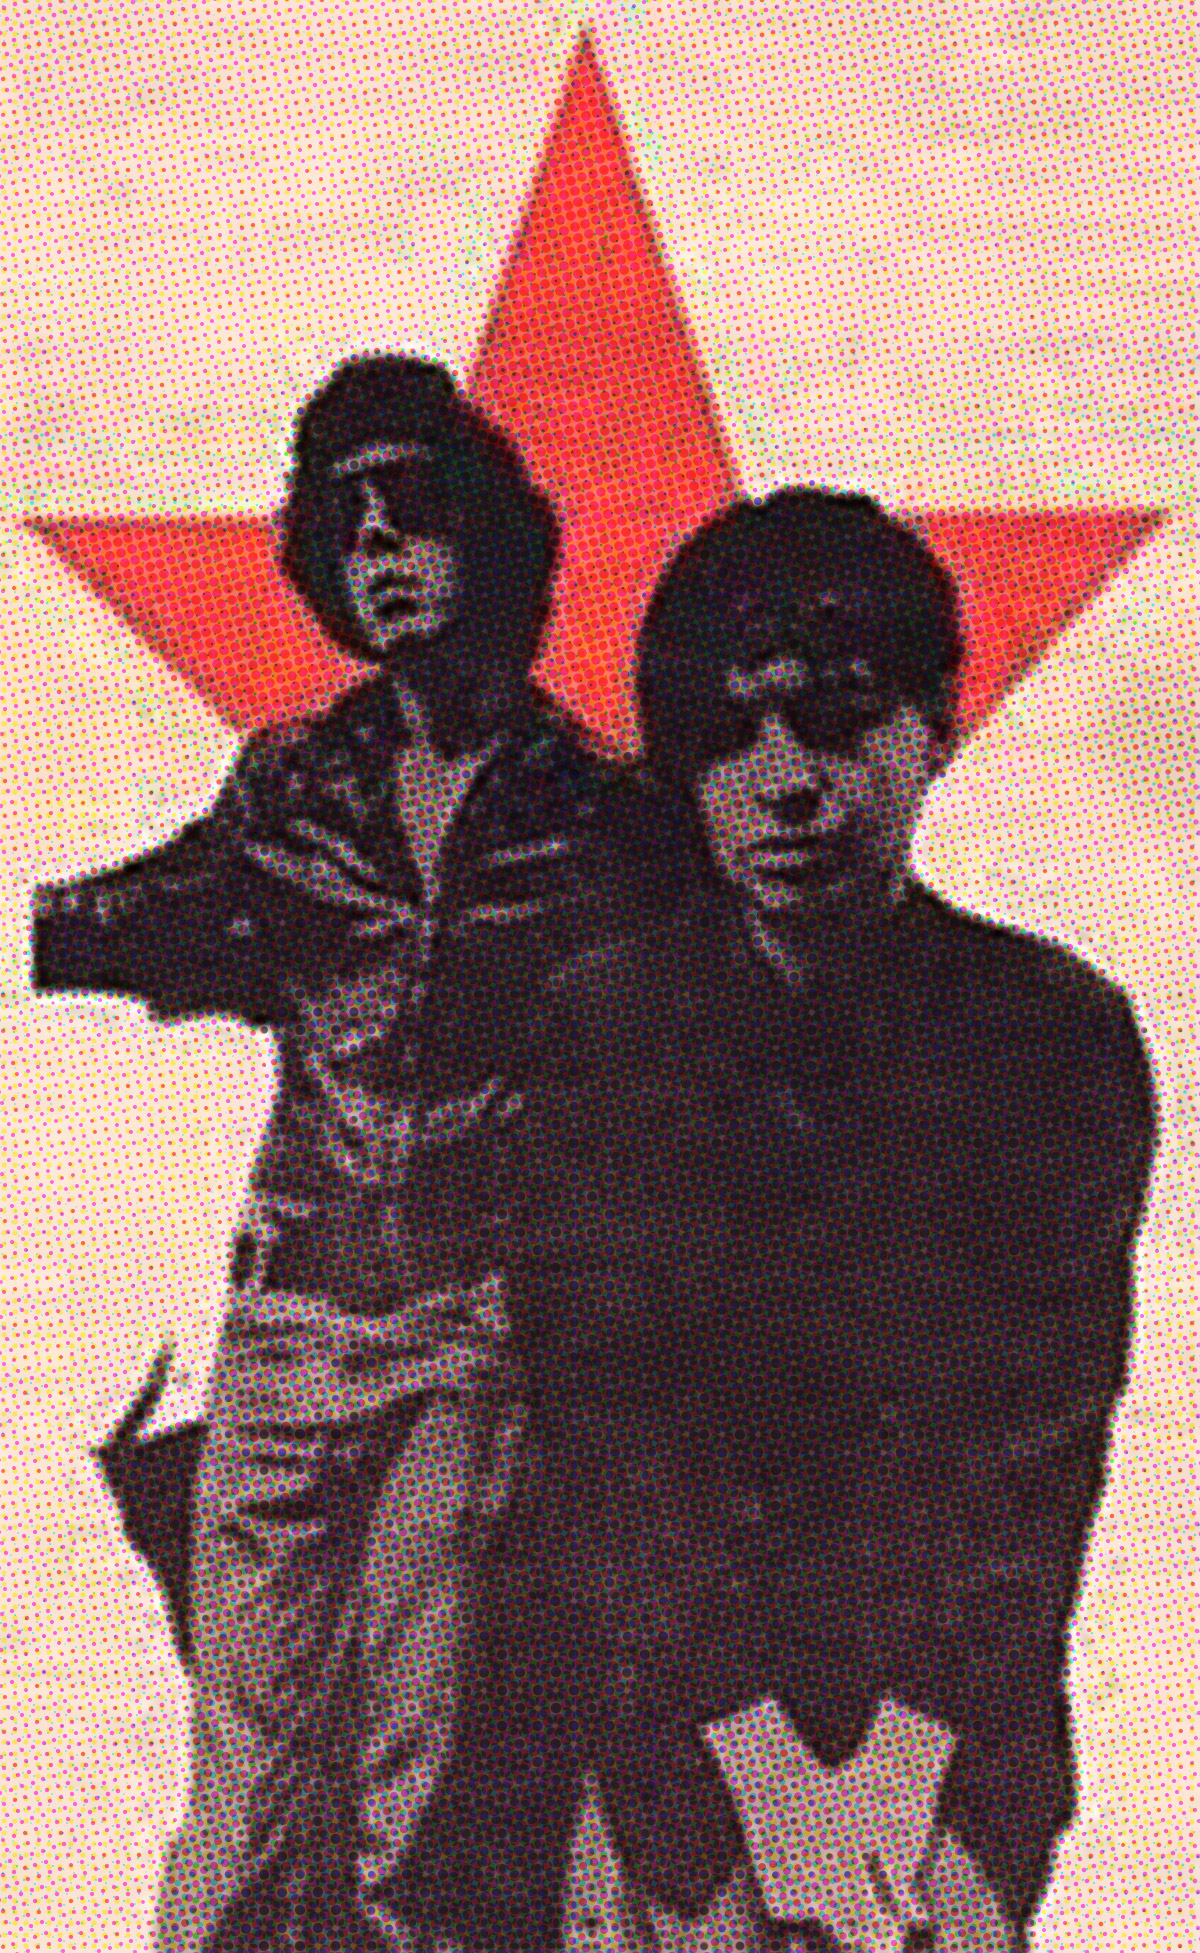 martin rev and alan vega